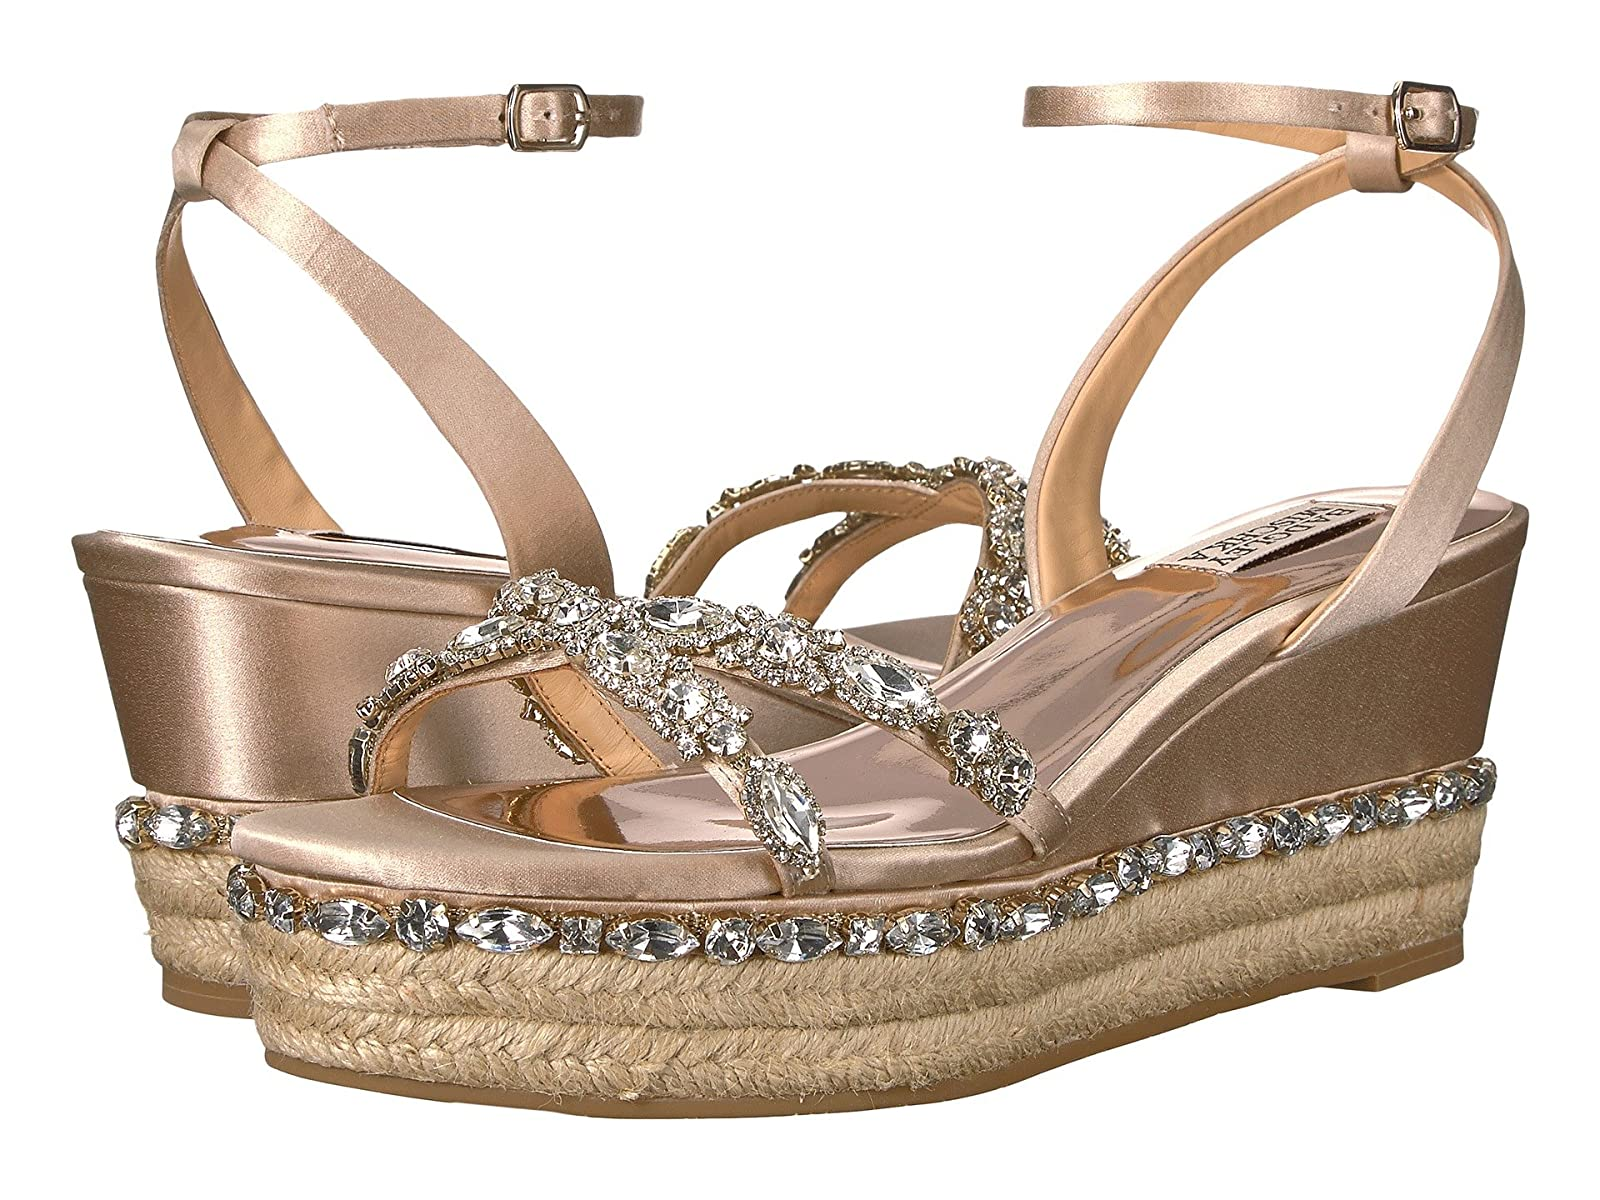 Badgley Mischka SilvieCheap and distinctive eye-catching shoes